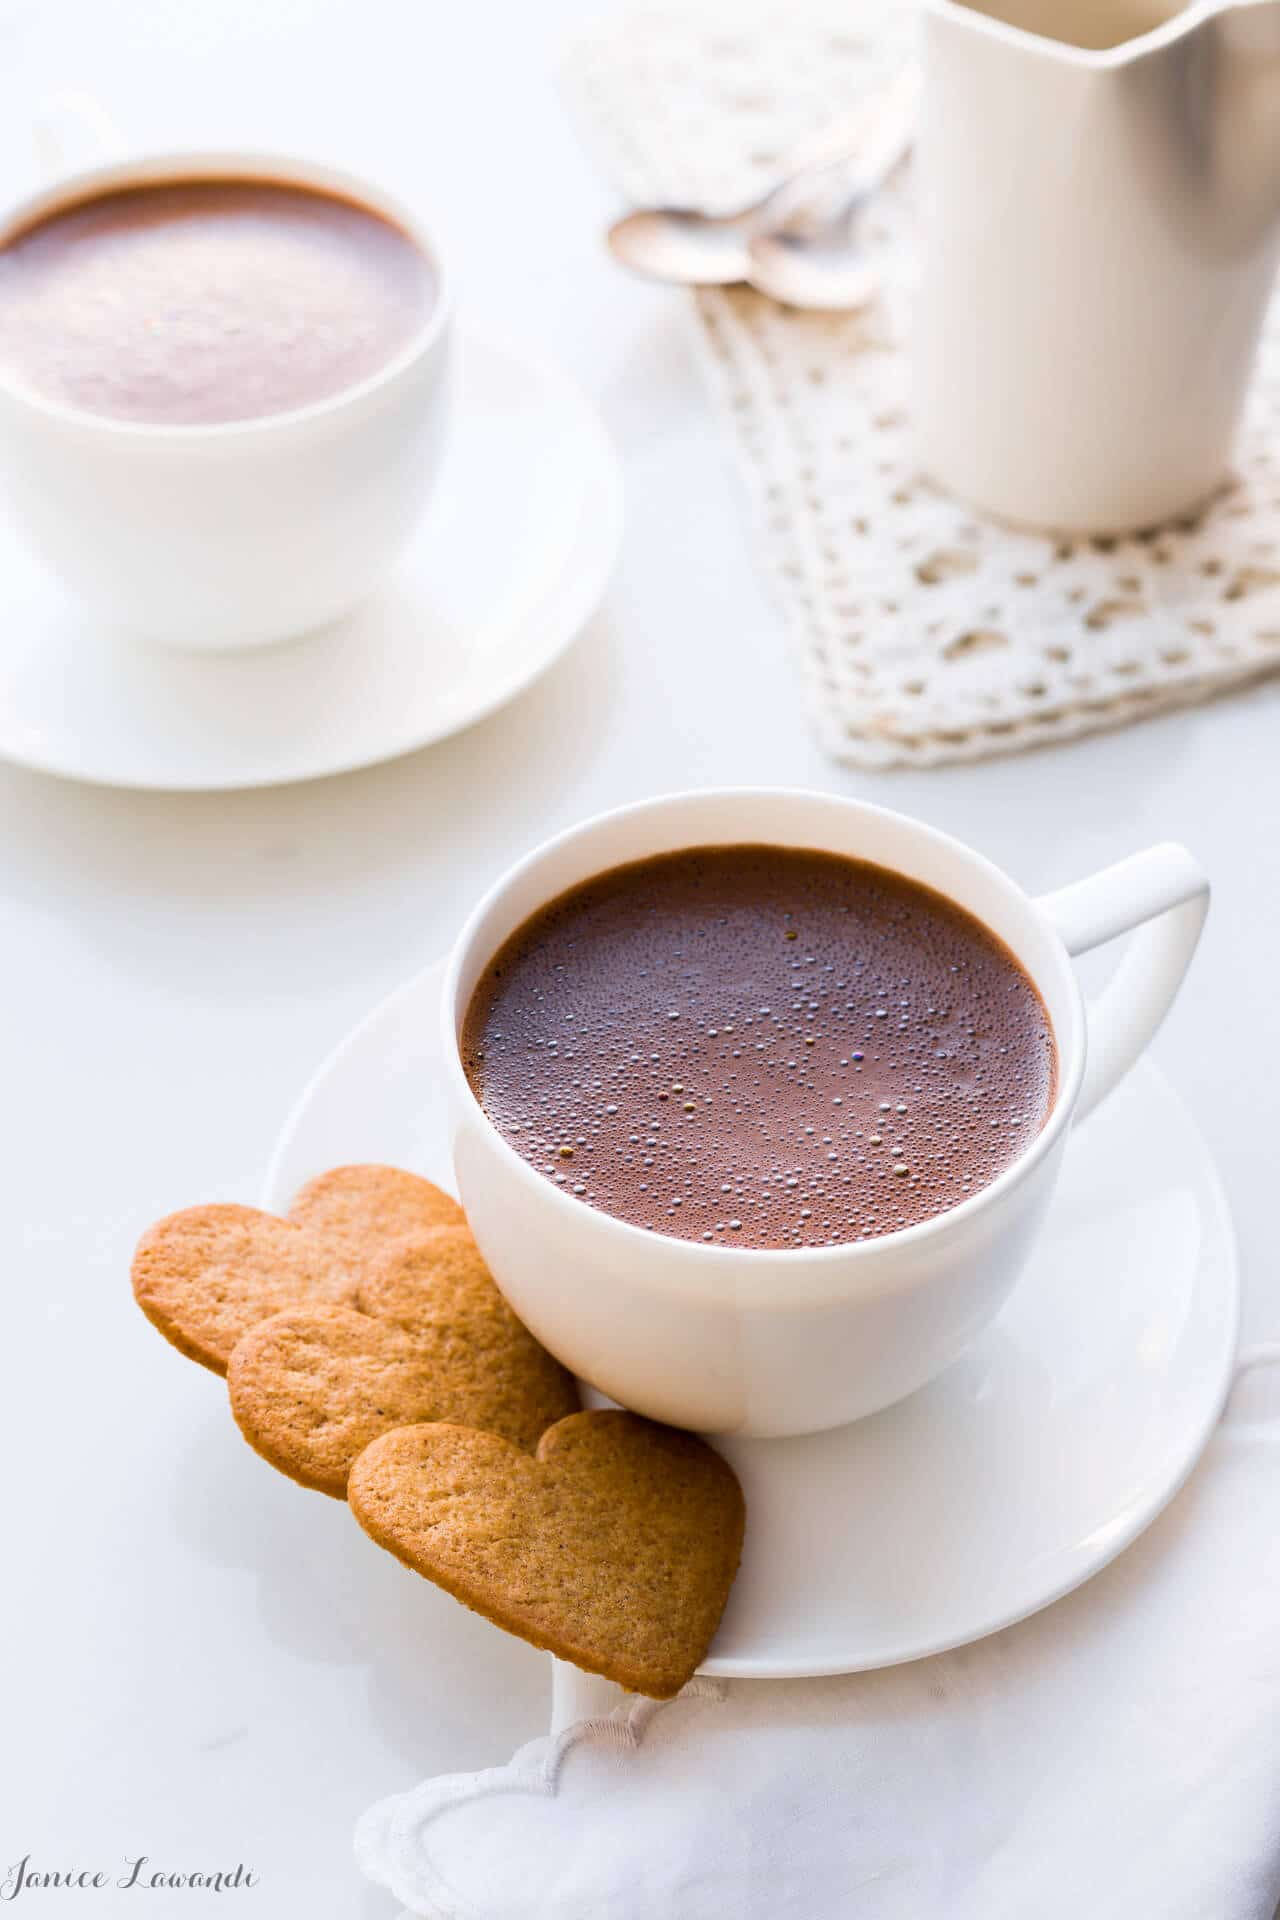 Homemade hot chocolate served in white cups, white saucers, and heart-shaped cookies.